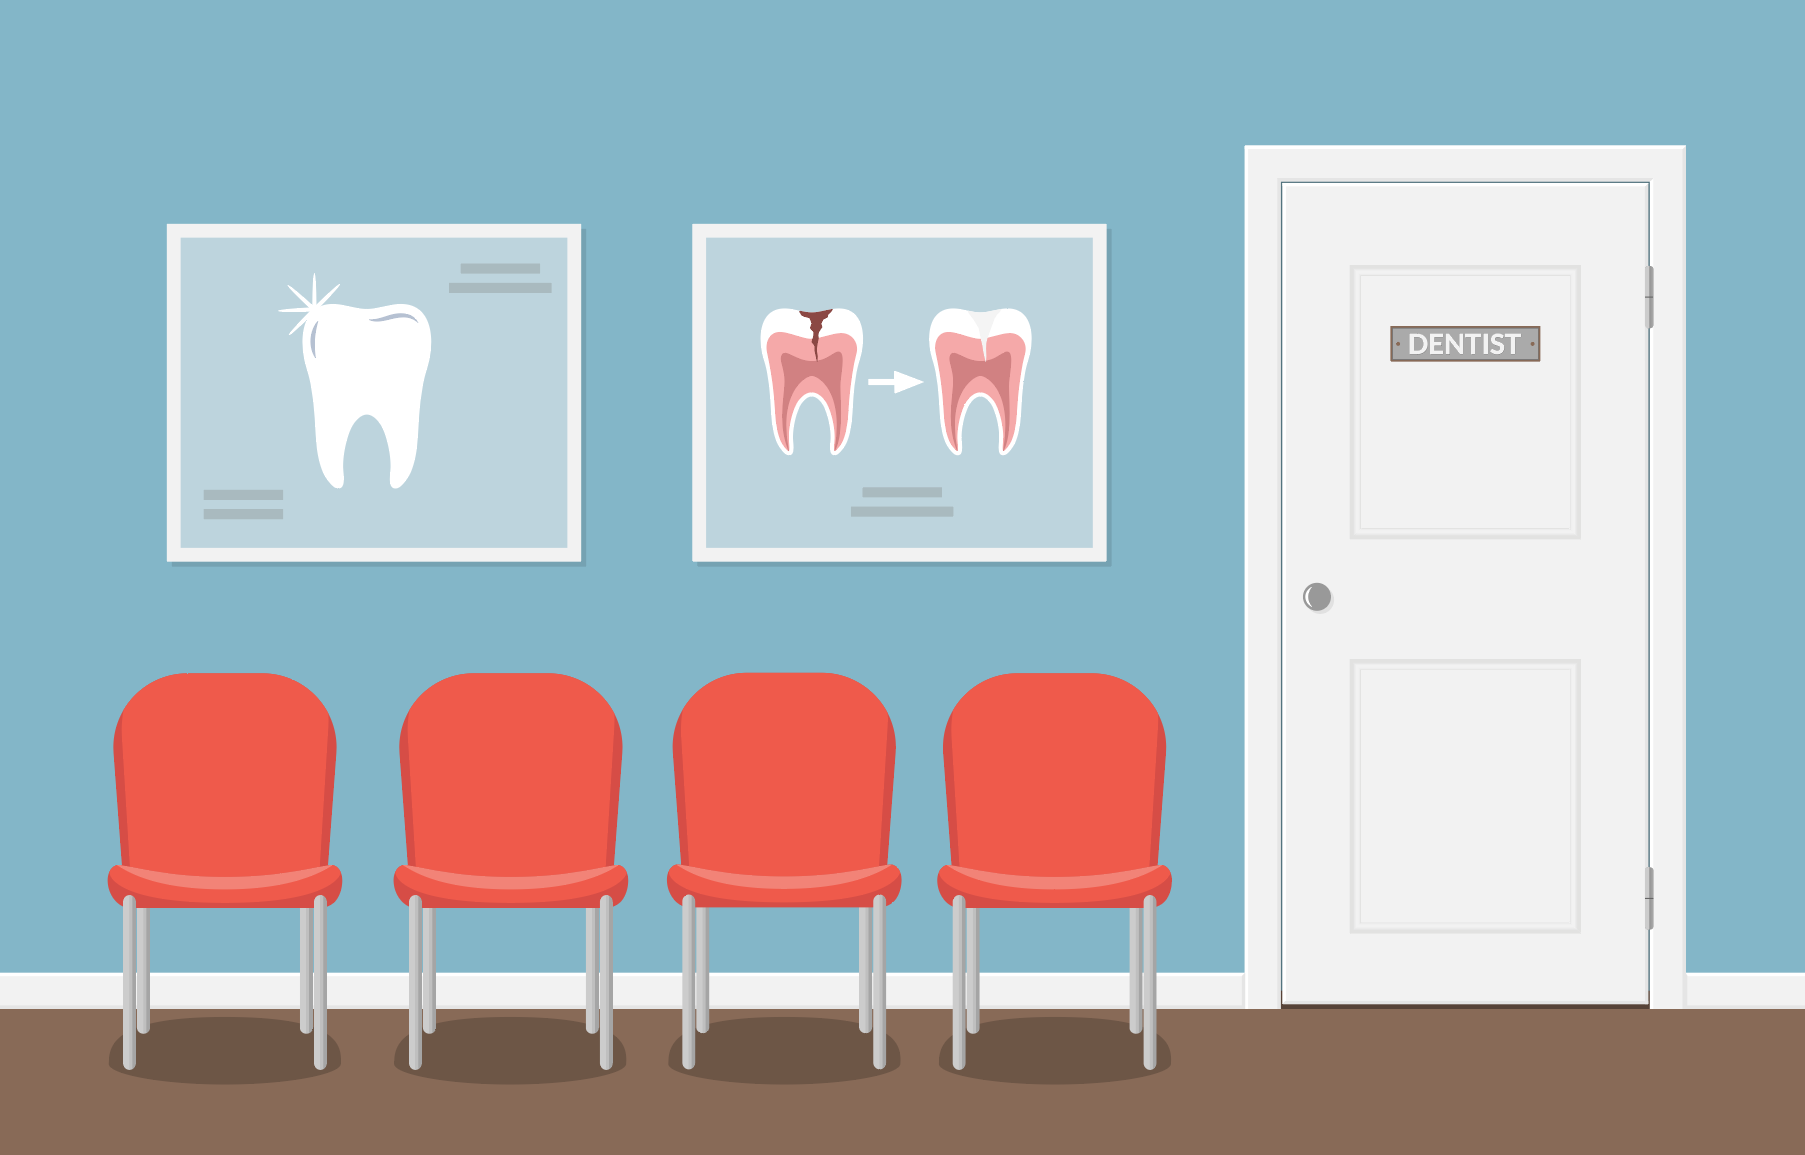 Things to consider when choosing a dentist